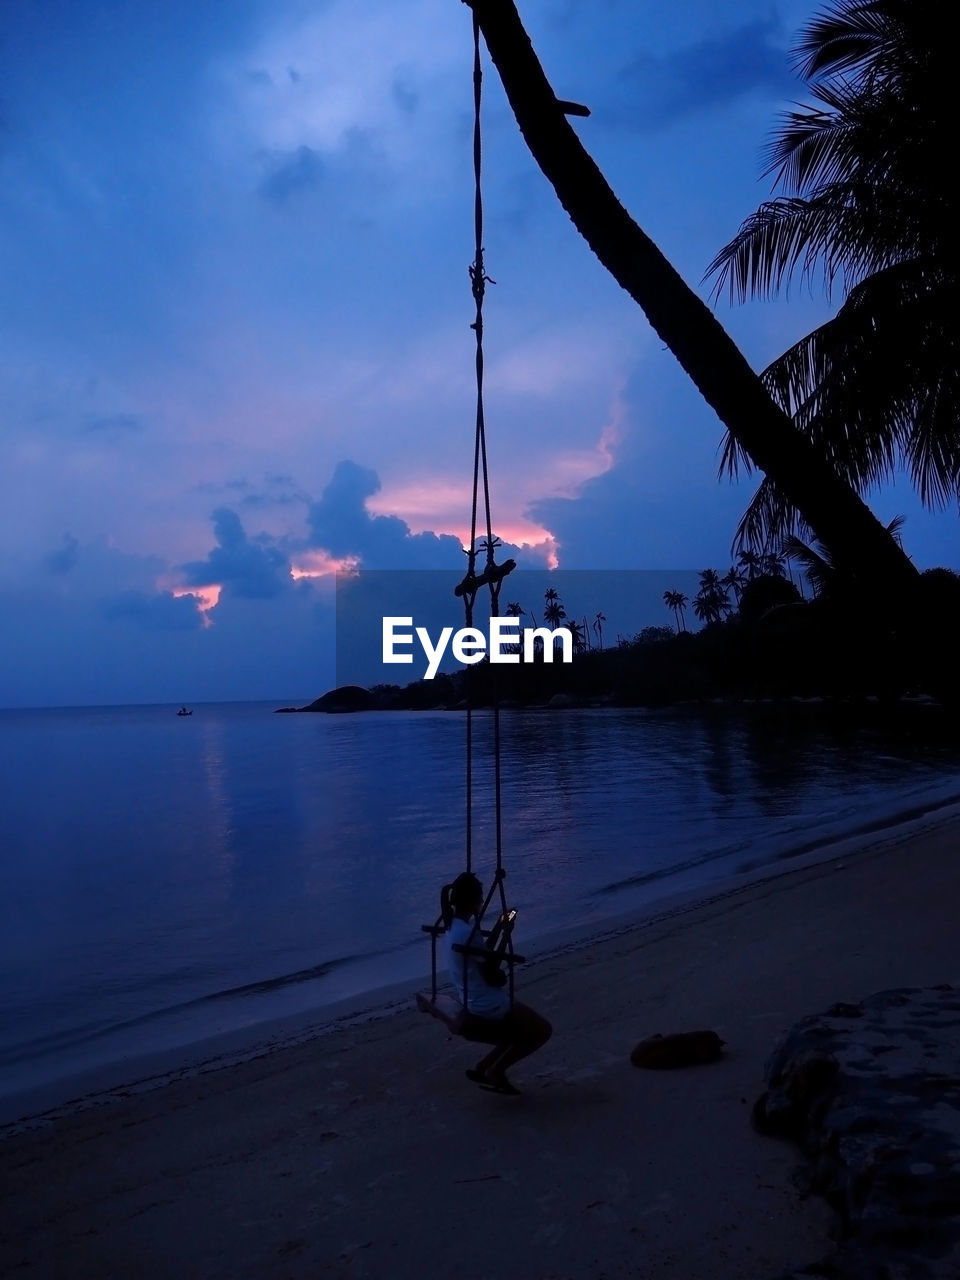 High Angle View Of Woman Using Phone While Sitting On Swing At Beach At Dusk